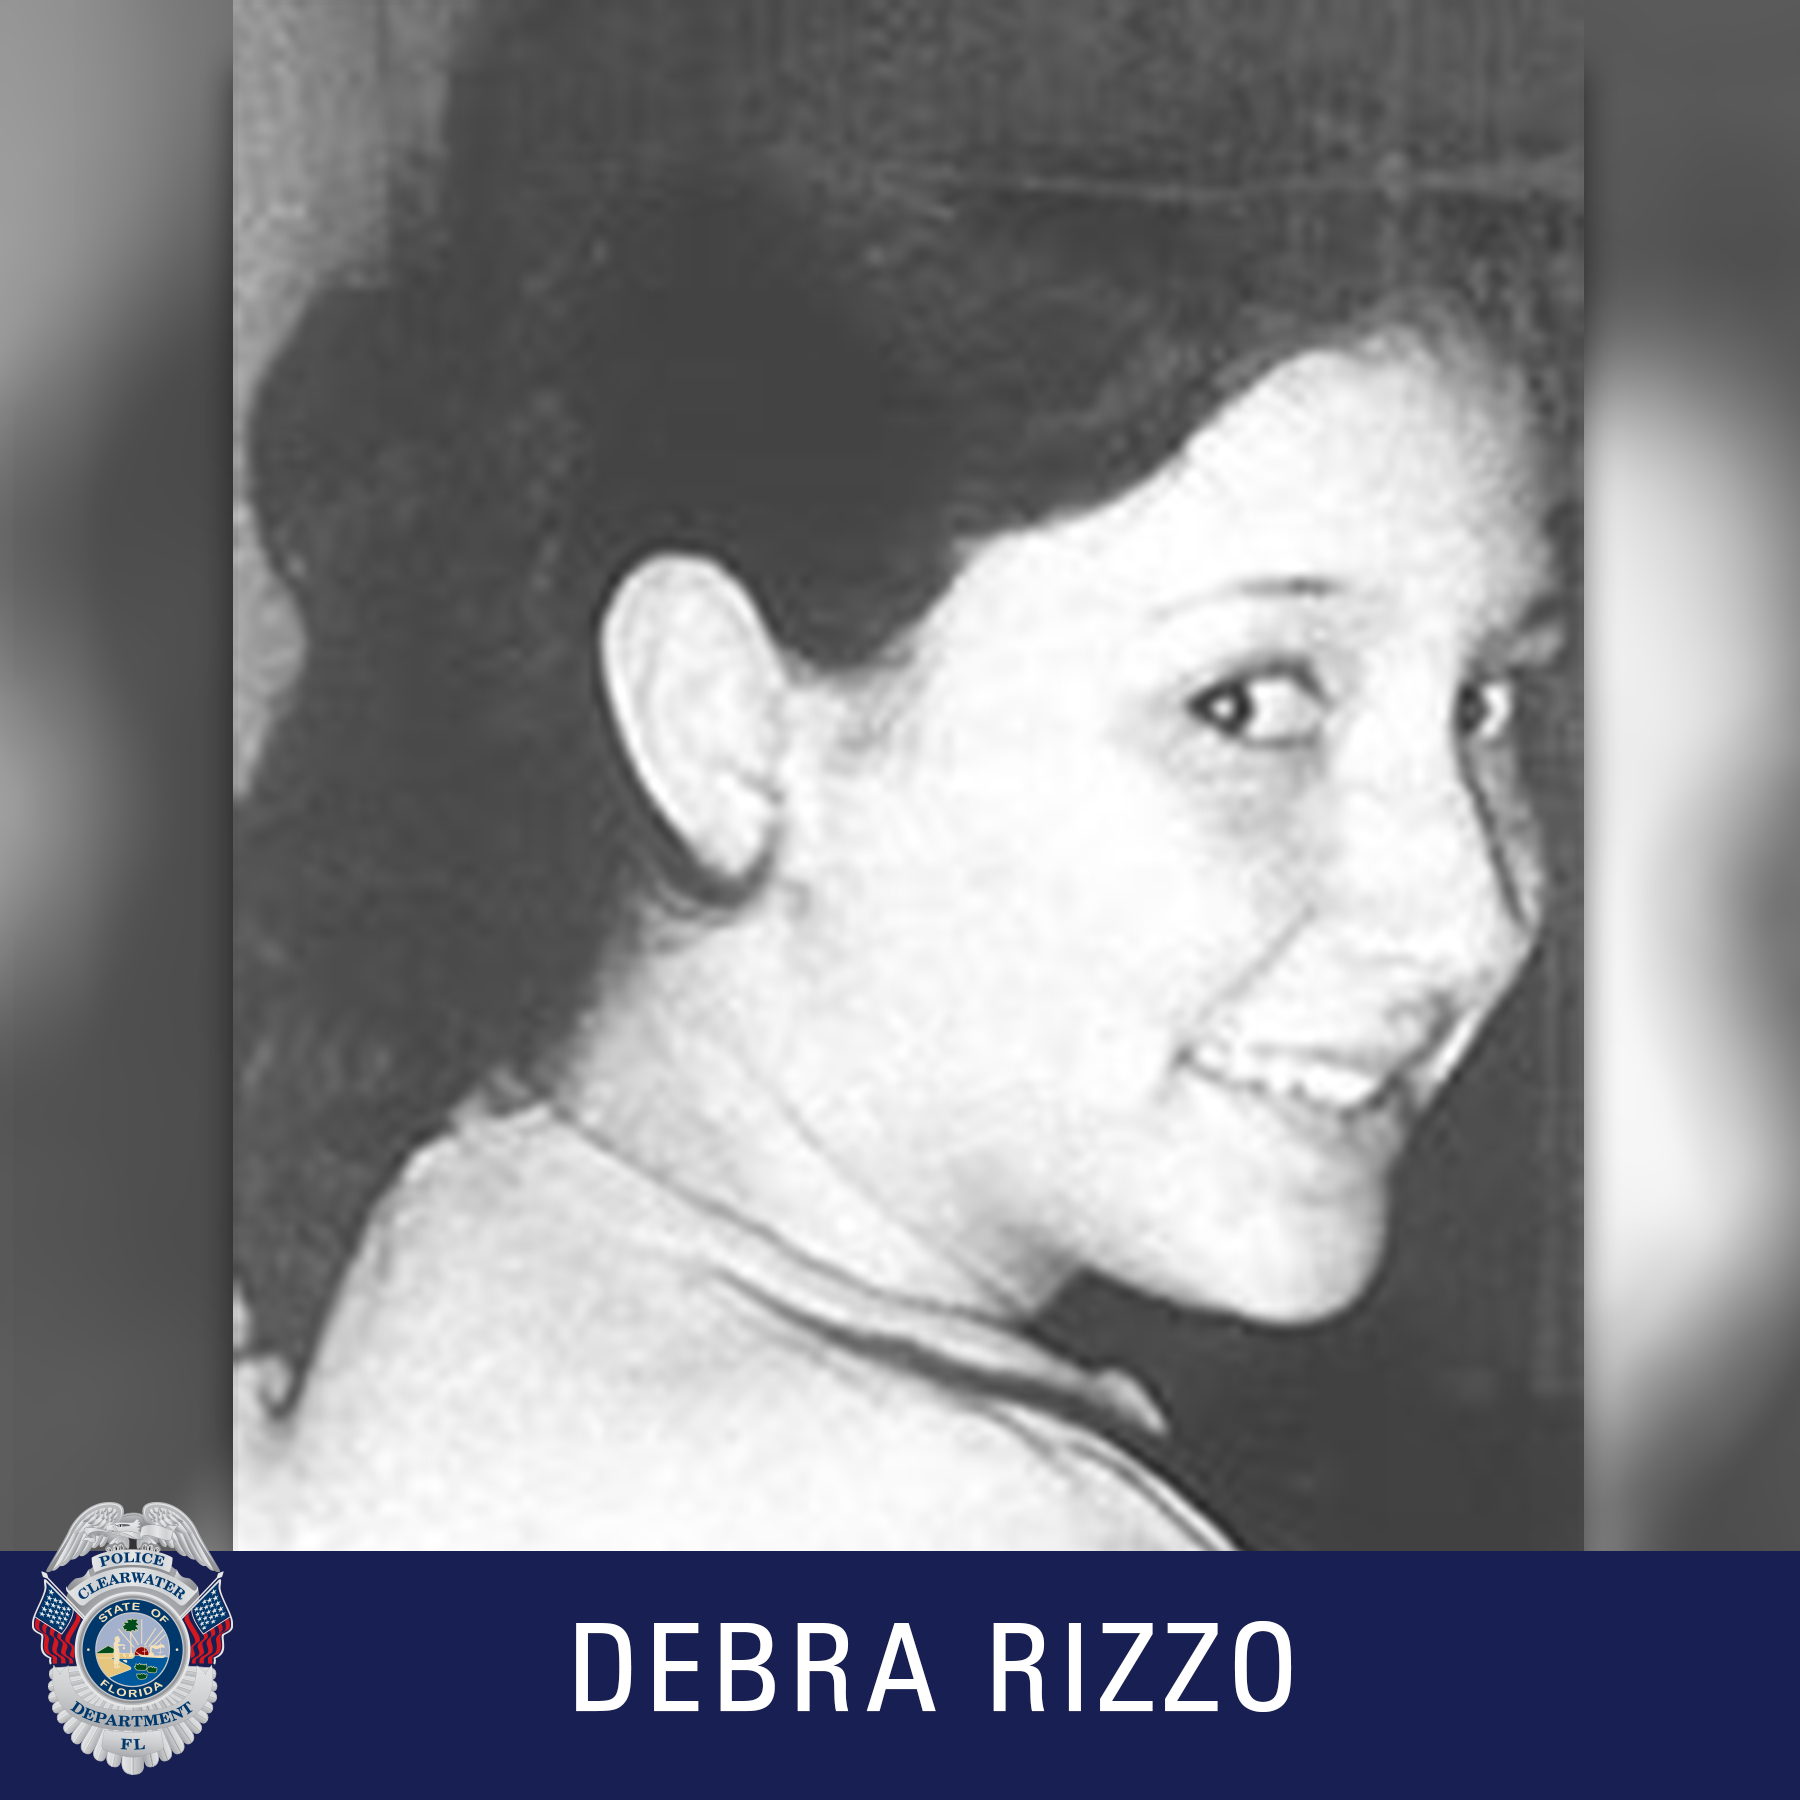 Debra Rizzo, Clearwater Police Department Shield, Black and white photo of girl smiling at the camera